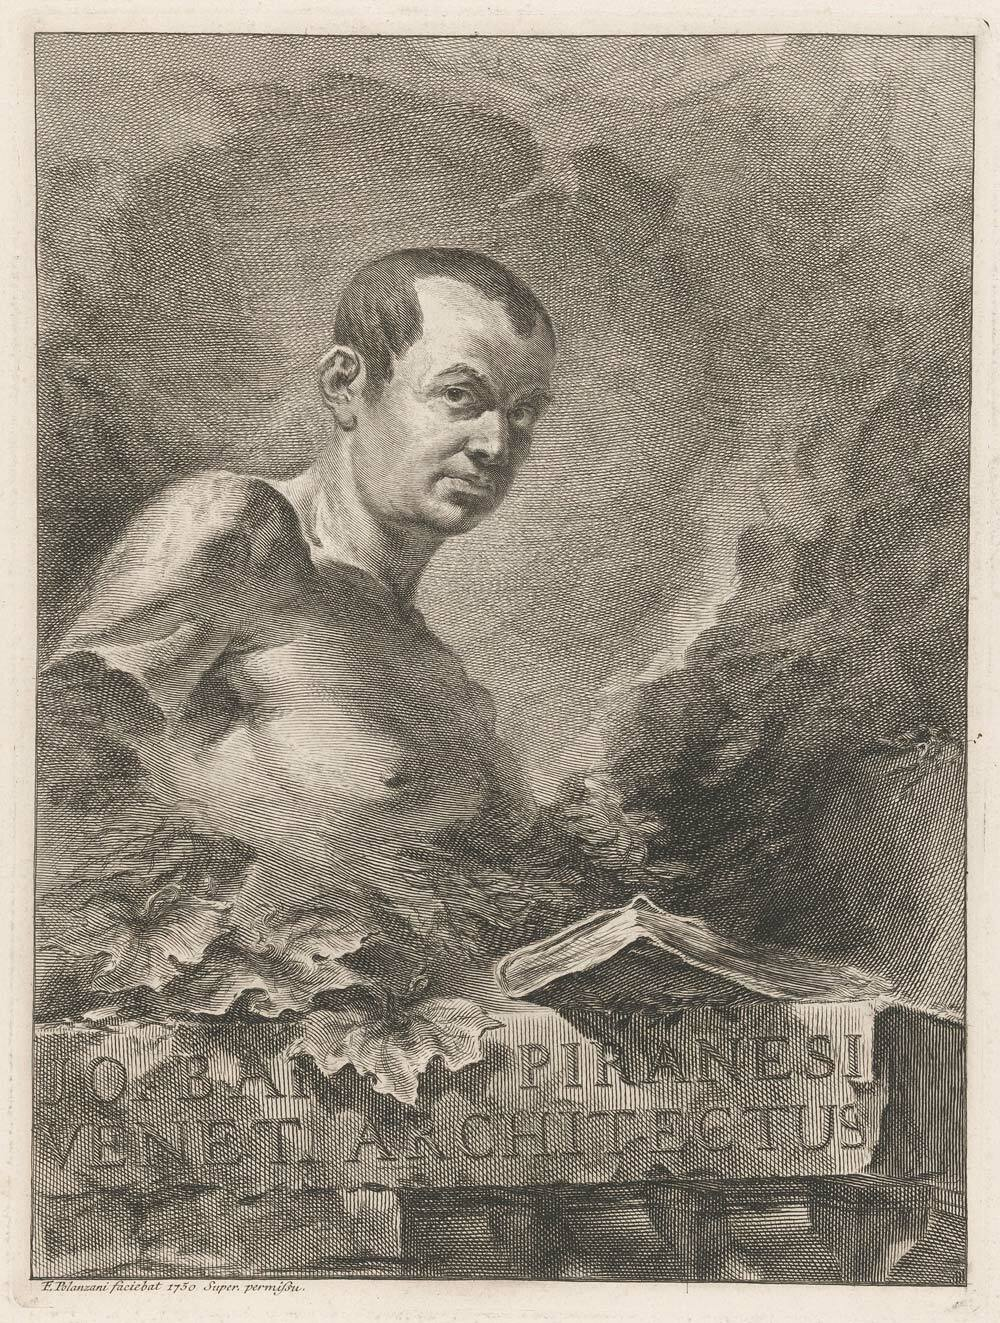 Portrait of Piranesi by F. Polanzani (1700-after 1771) (Collection Rijksmuseum Amsterdam)